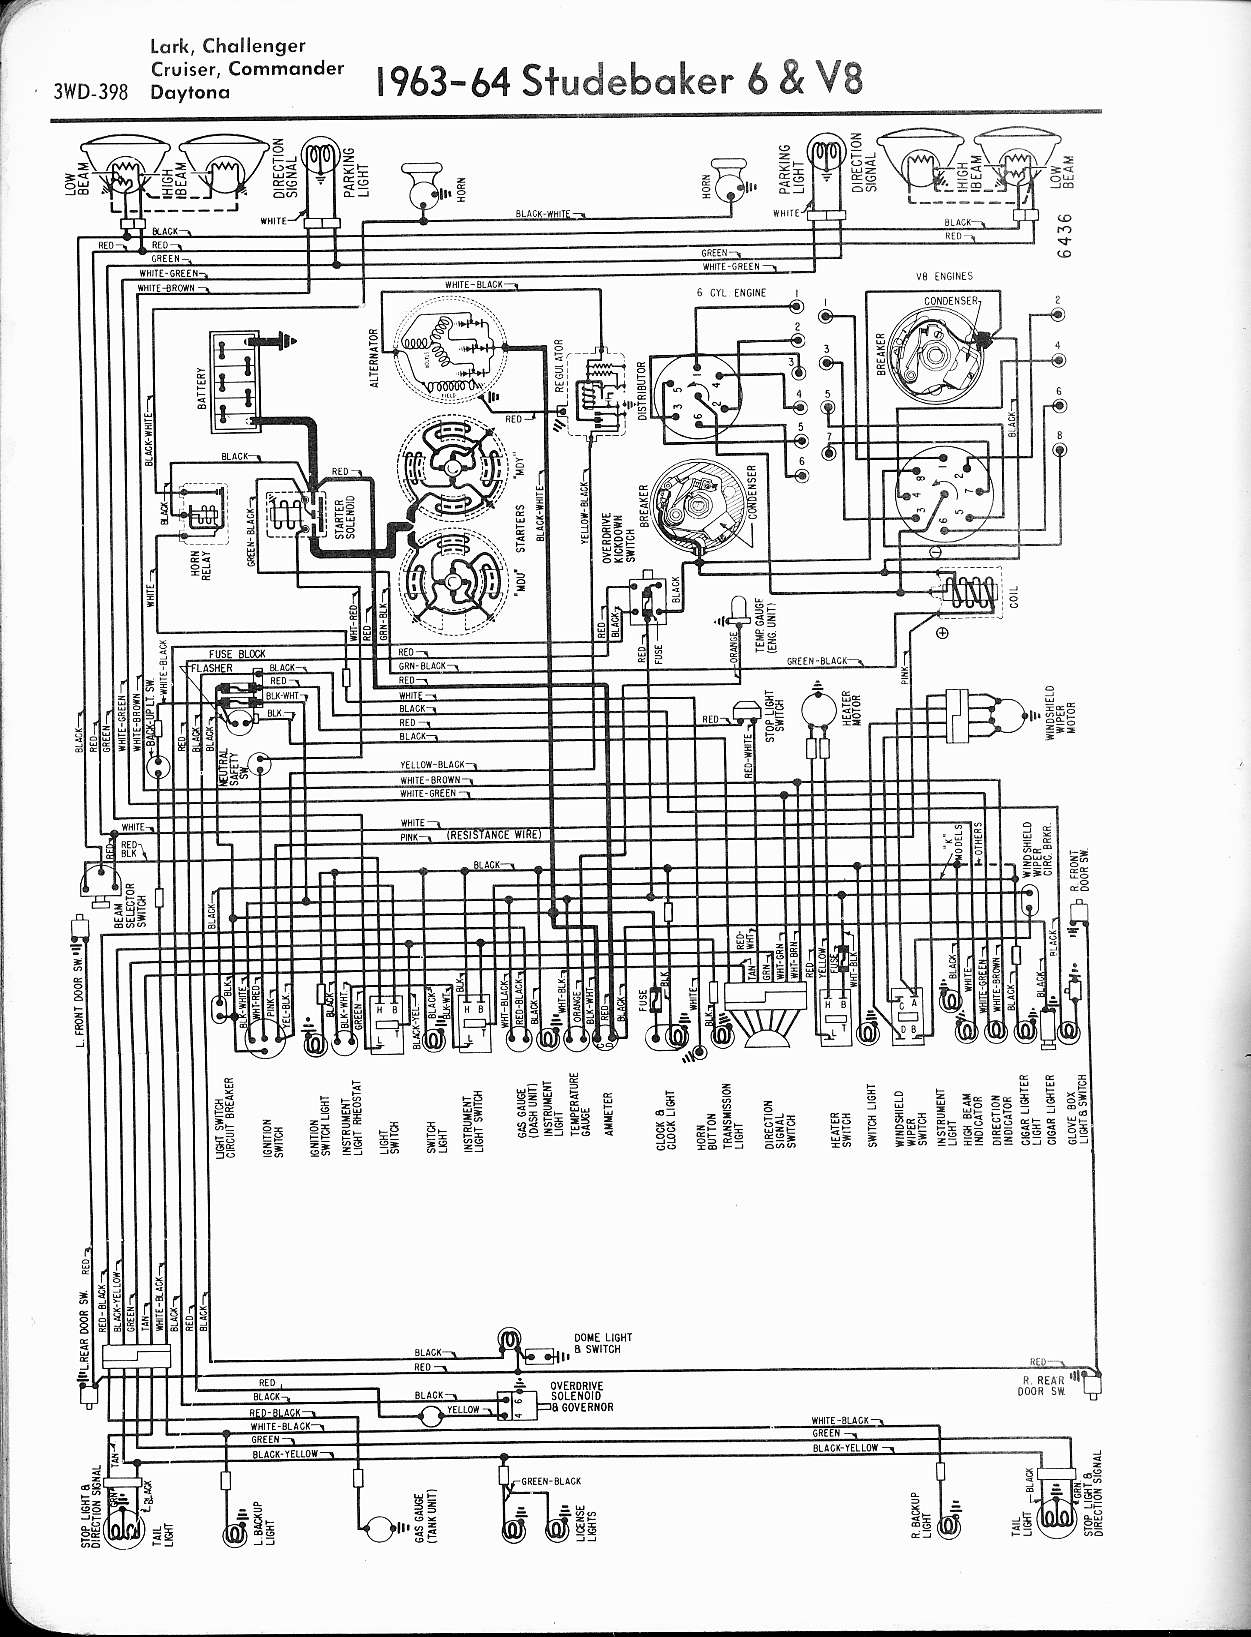 studebaker wiring diagrams the old car manual project Generator Wiring Diagram Mazda Generator Wiring Diagram